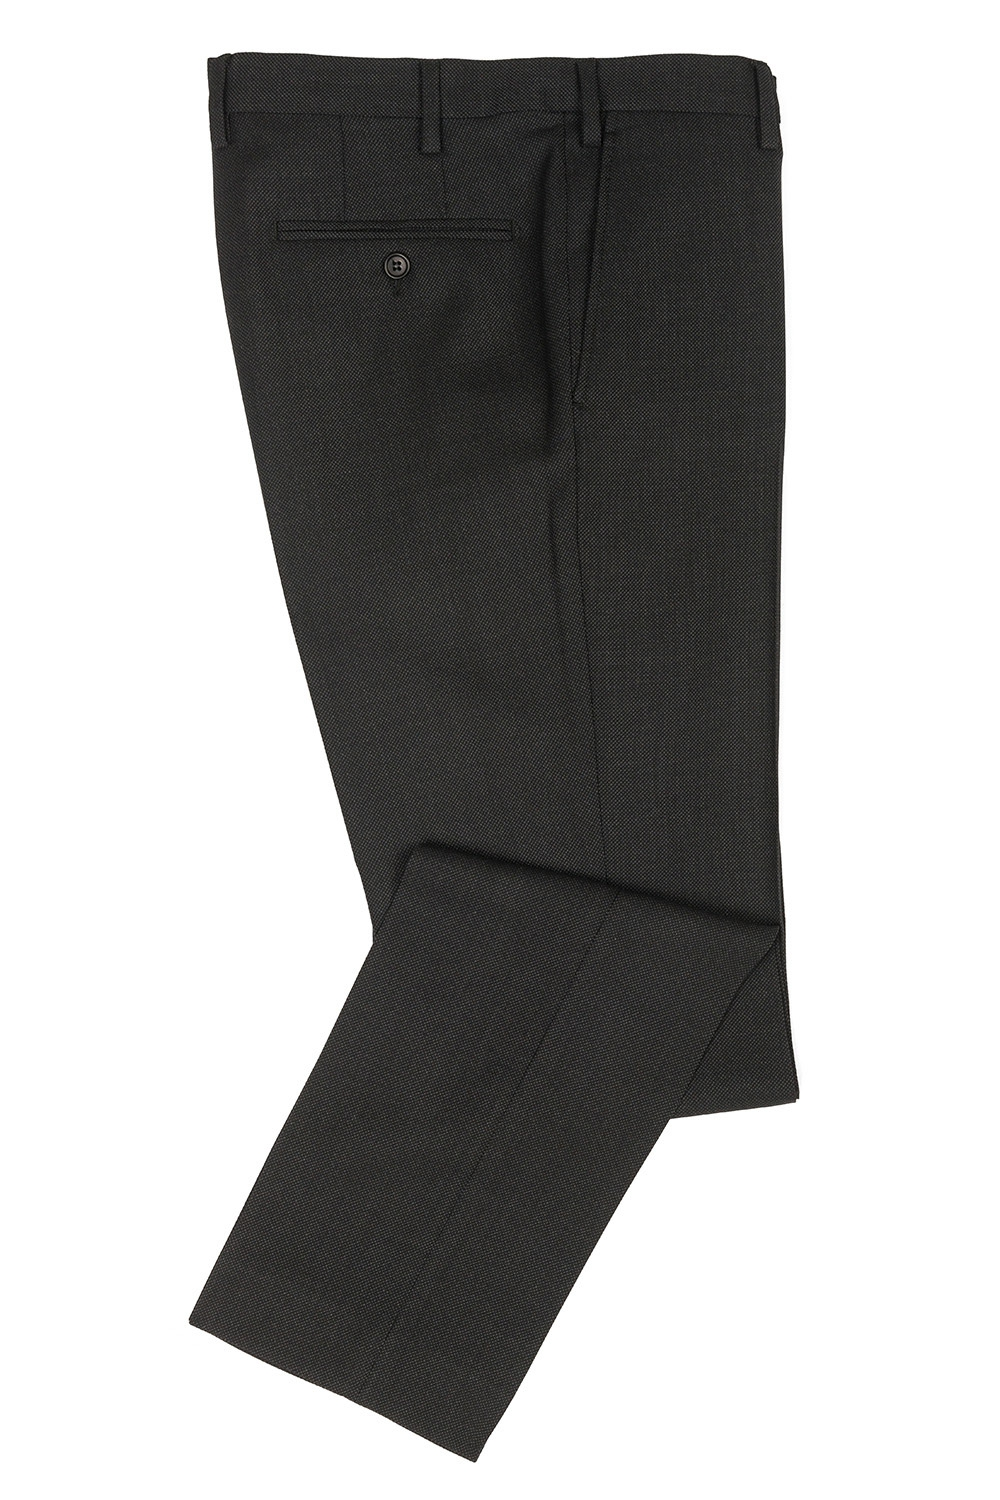 Superslim Grey Plain Trouser 0